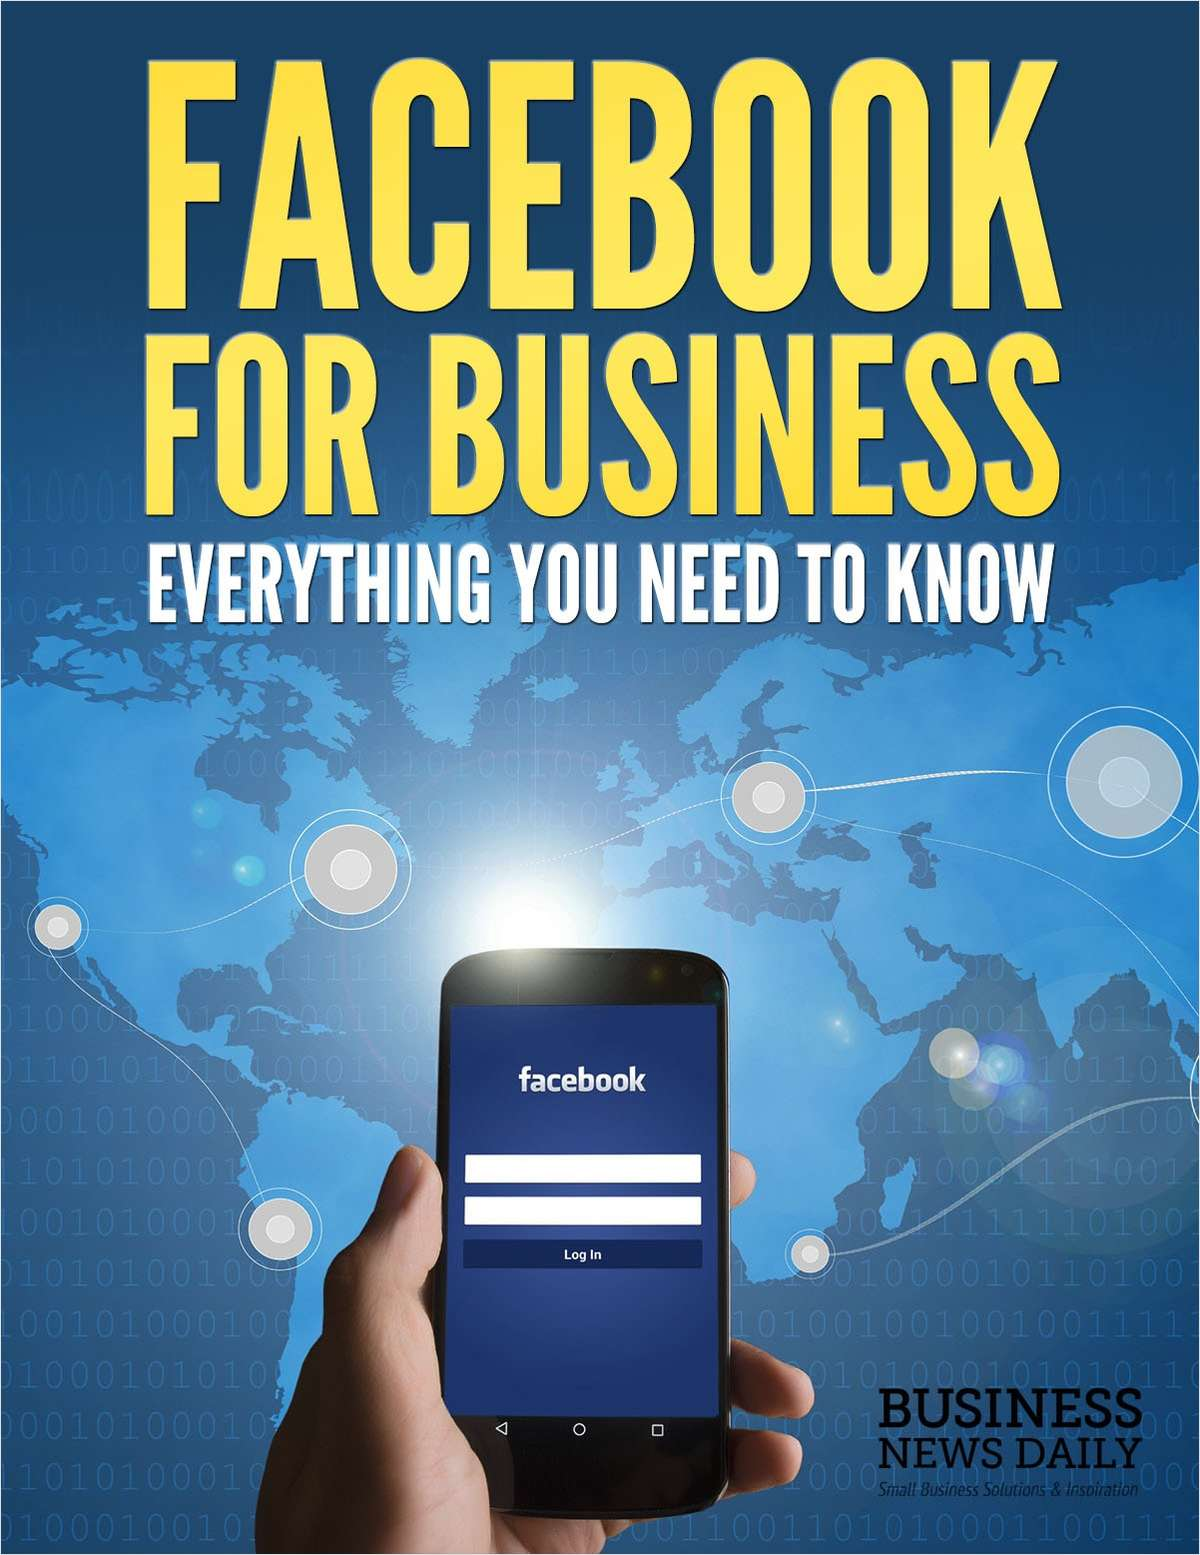 Facebook for Business - Everything You Need to Know